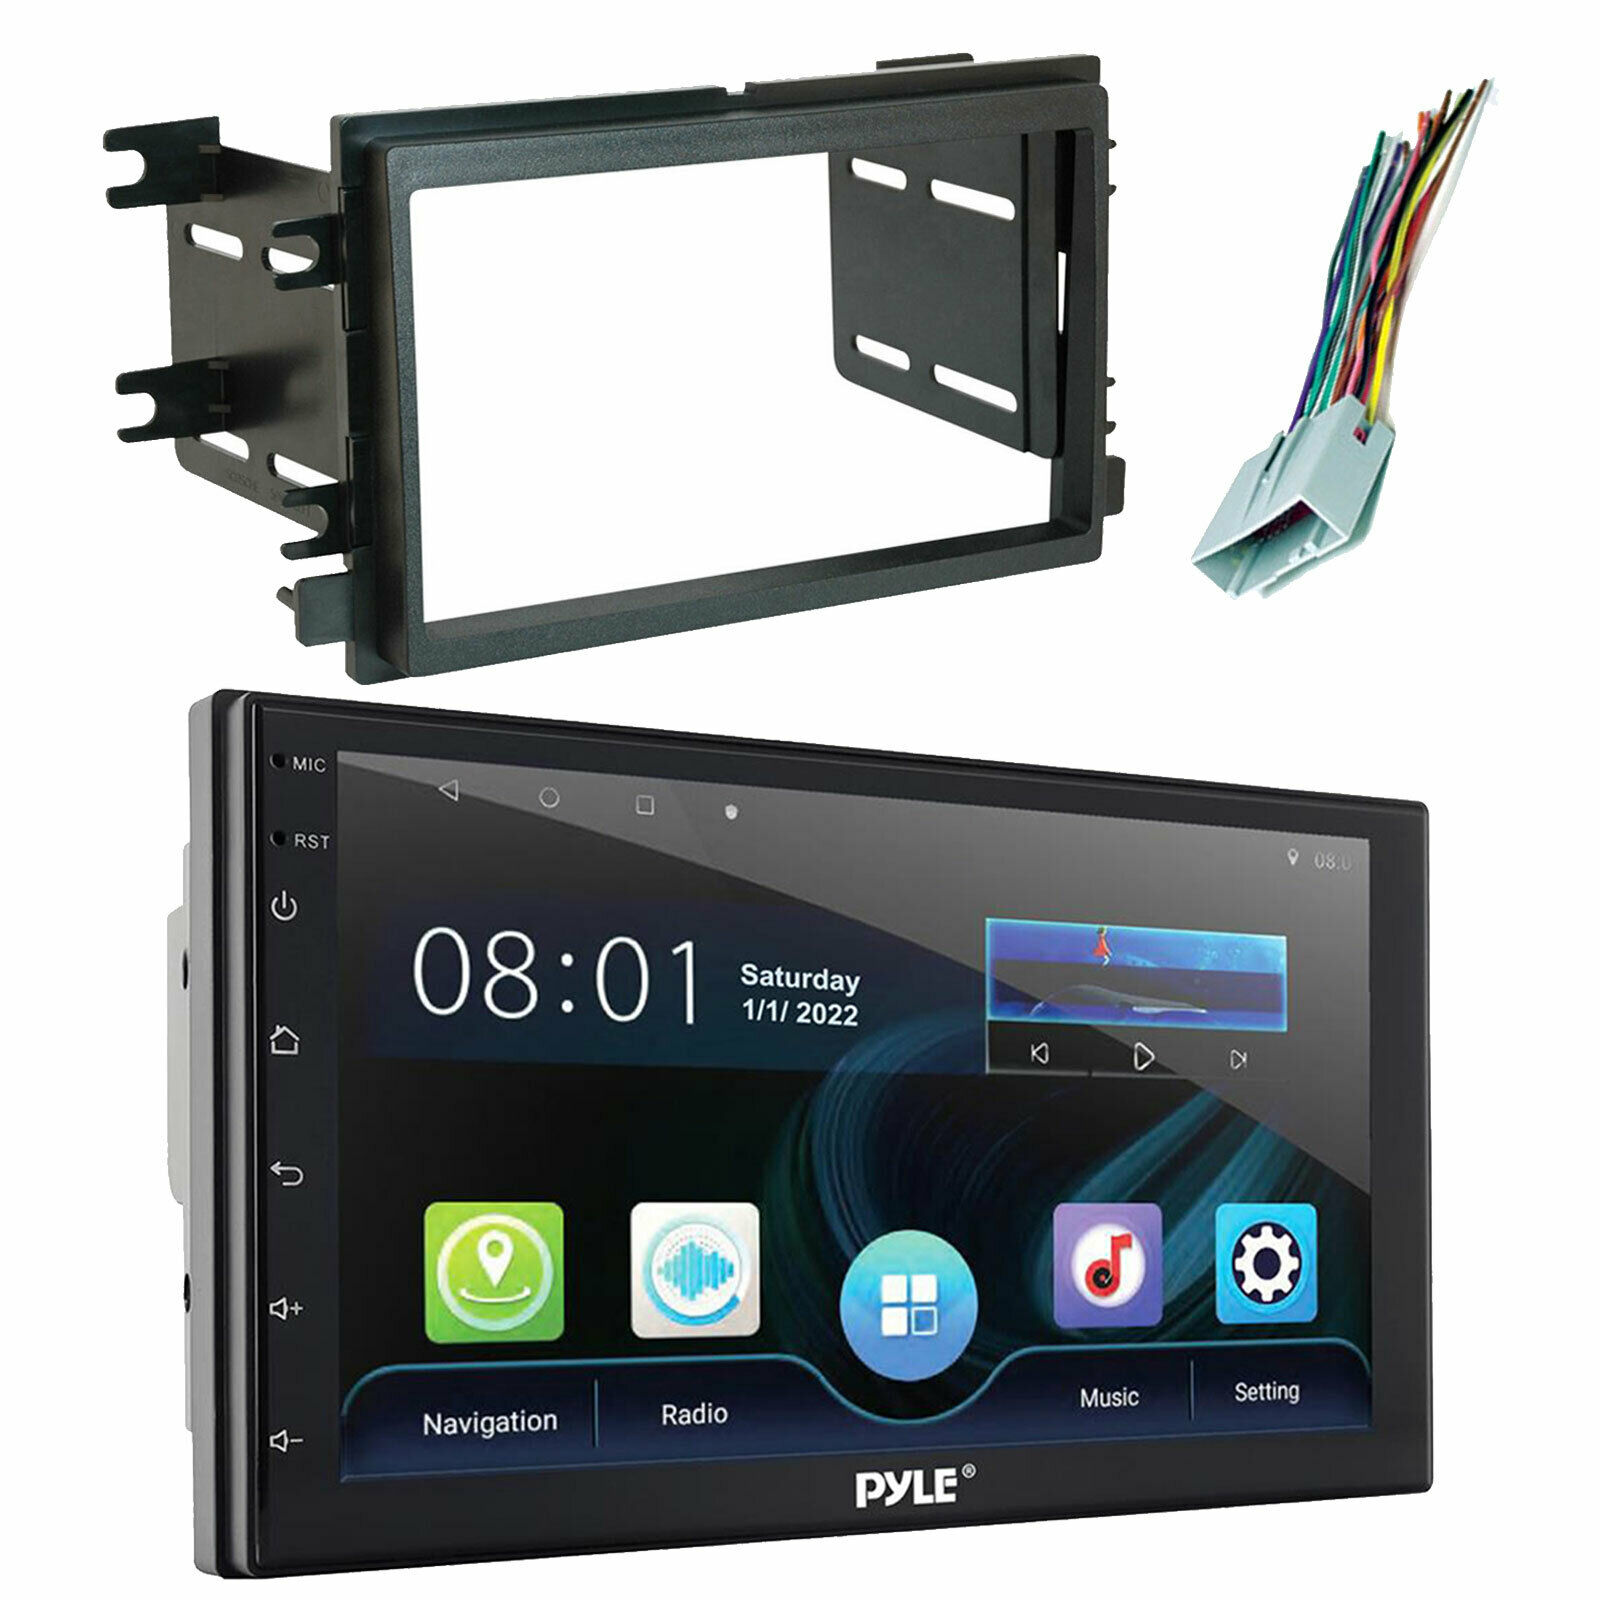 Dual 2 Din Touchscreen Dvd Cd Bluetooth Radio Scosche Dash Kit 2012 Dodge Avenger Wire Harness 1 Of 4only 0 Available